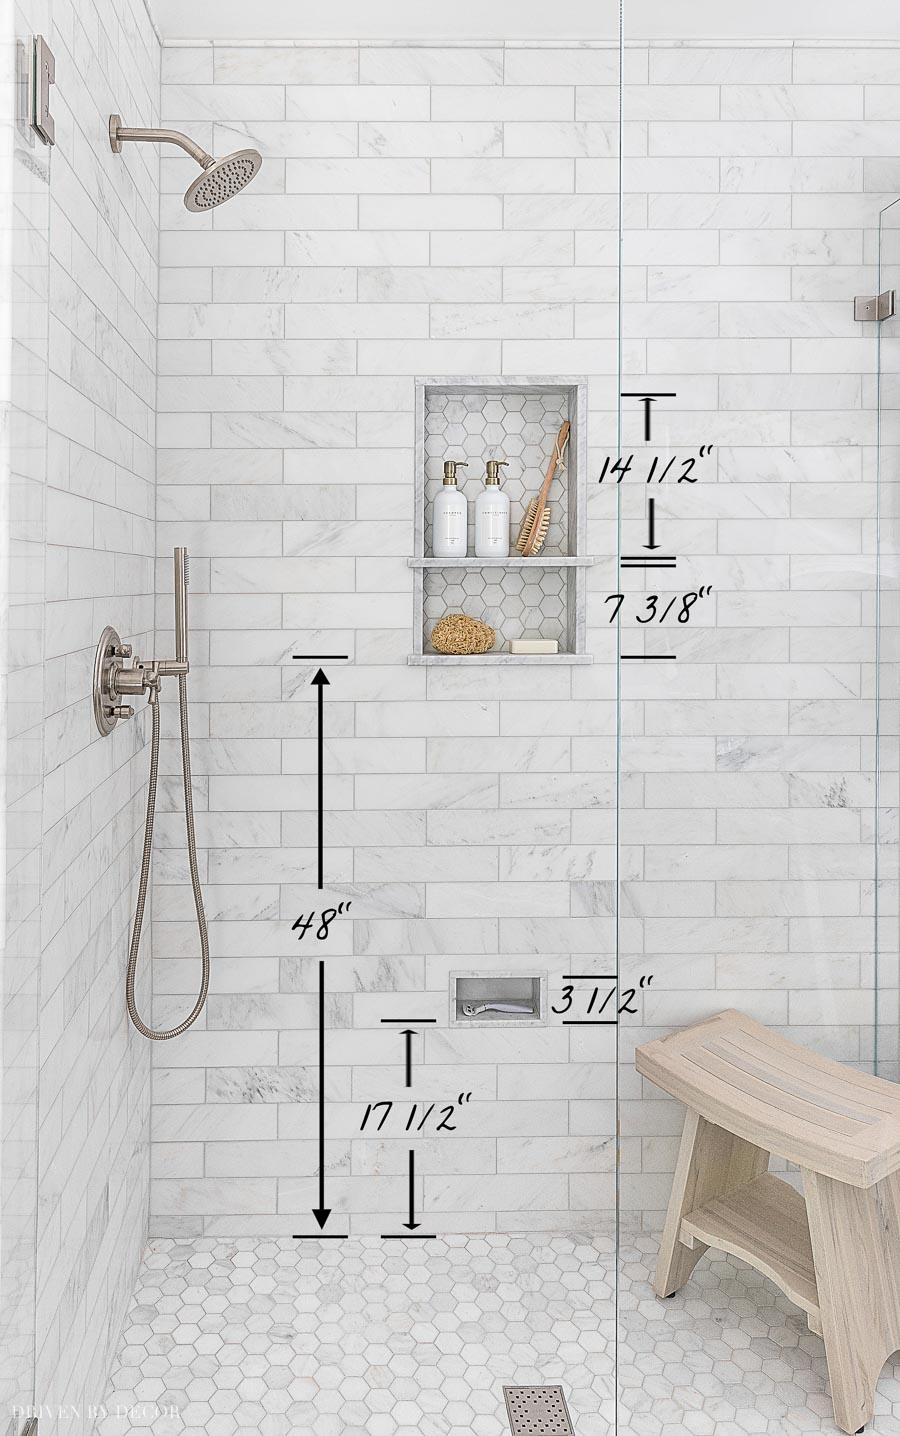 Our shower niche height measurements! Lots of other helpful bathroom measurements in this post too!